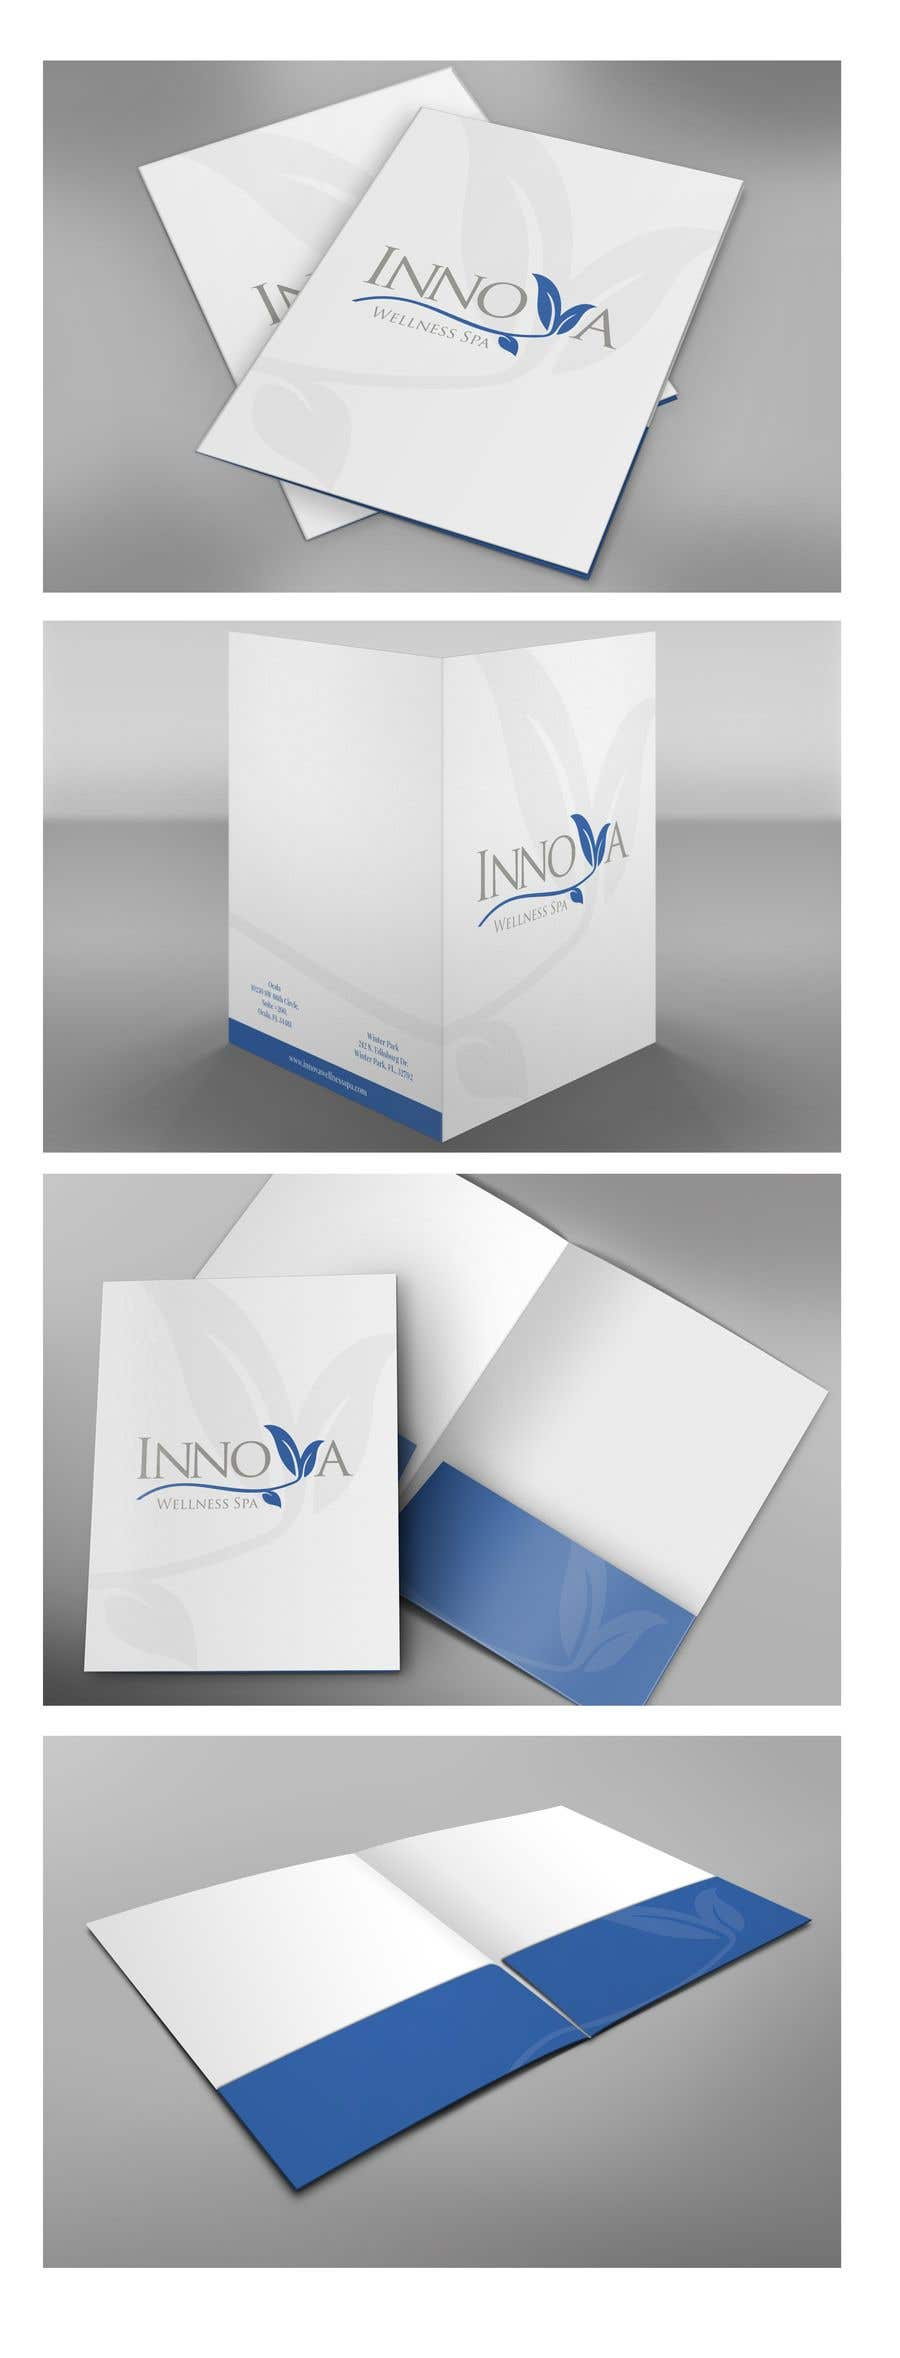 Contest Entry #                                        5                                      for                                         Design a Folder for a high end medical spa